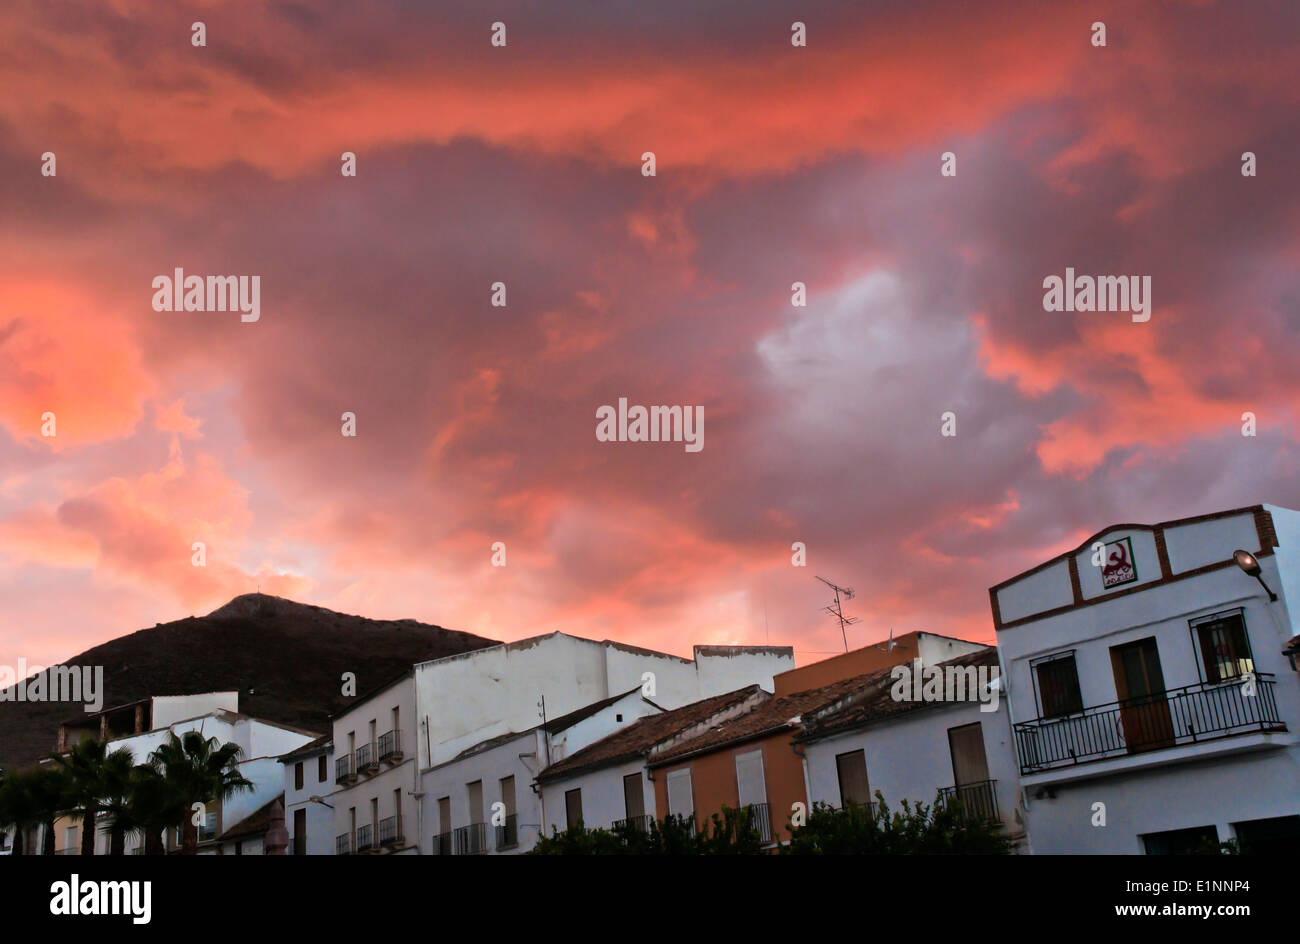 Urban view at sunset, Alameda, Malaga-province, Region of Andalusia, Spain, Europe - Stock Image